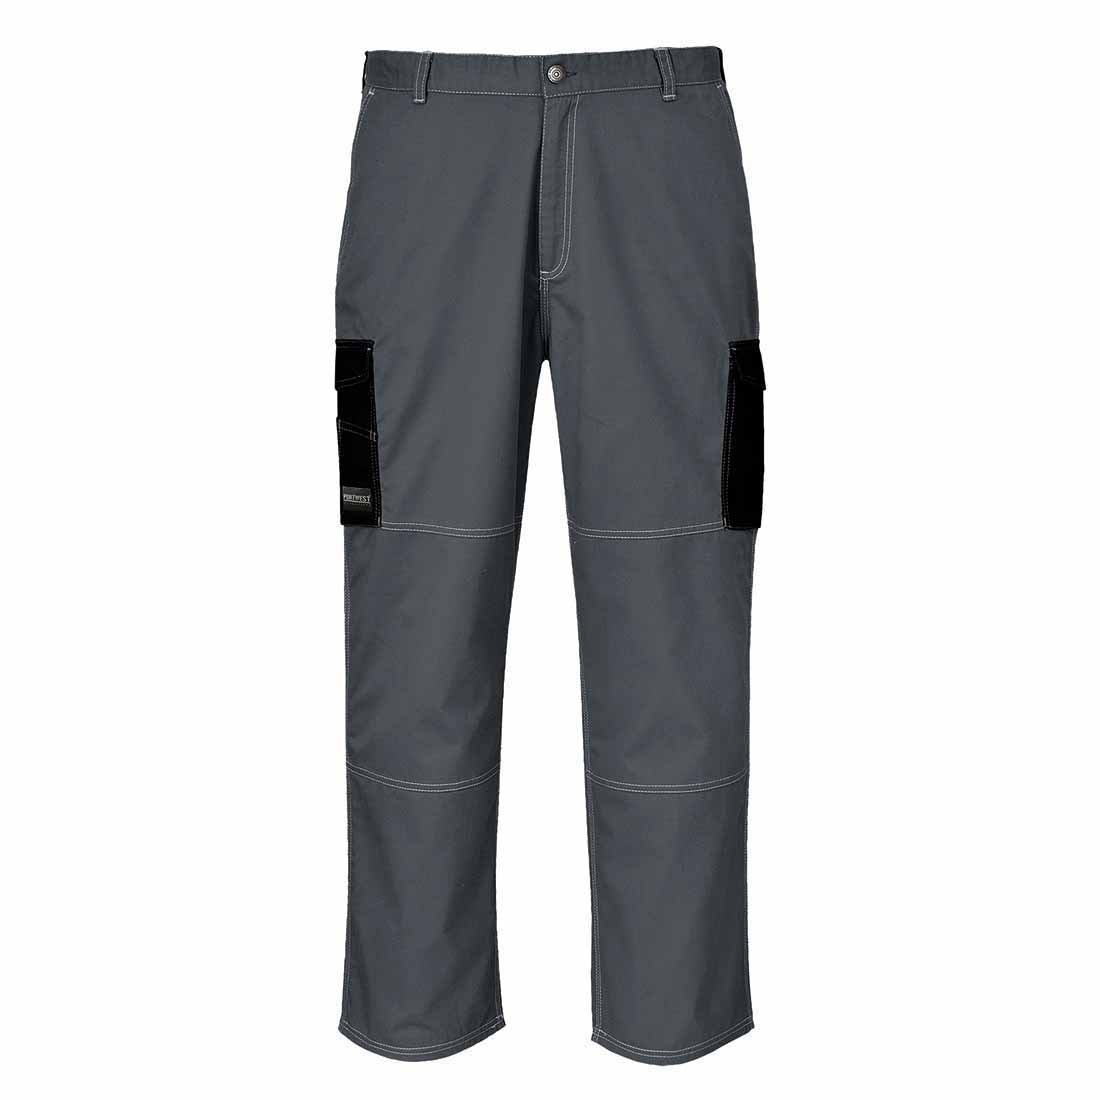 Portwest KS11 - Pantalones de carbono, color, talla XXL